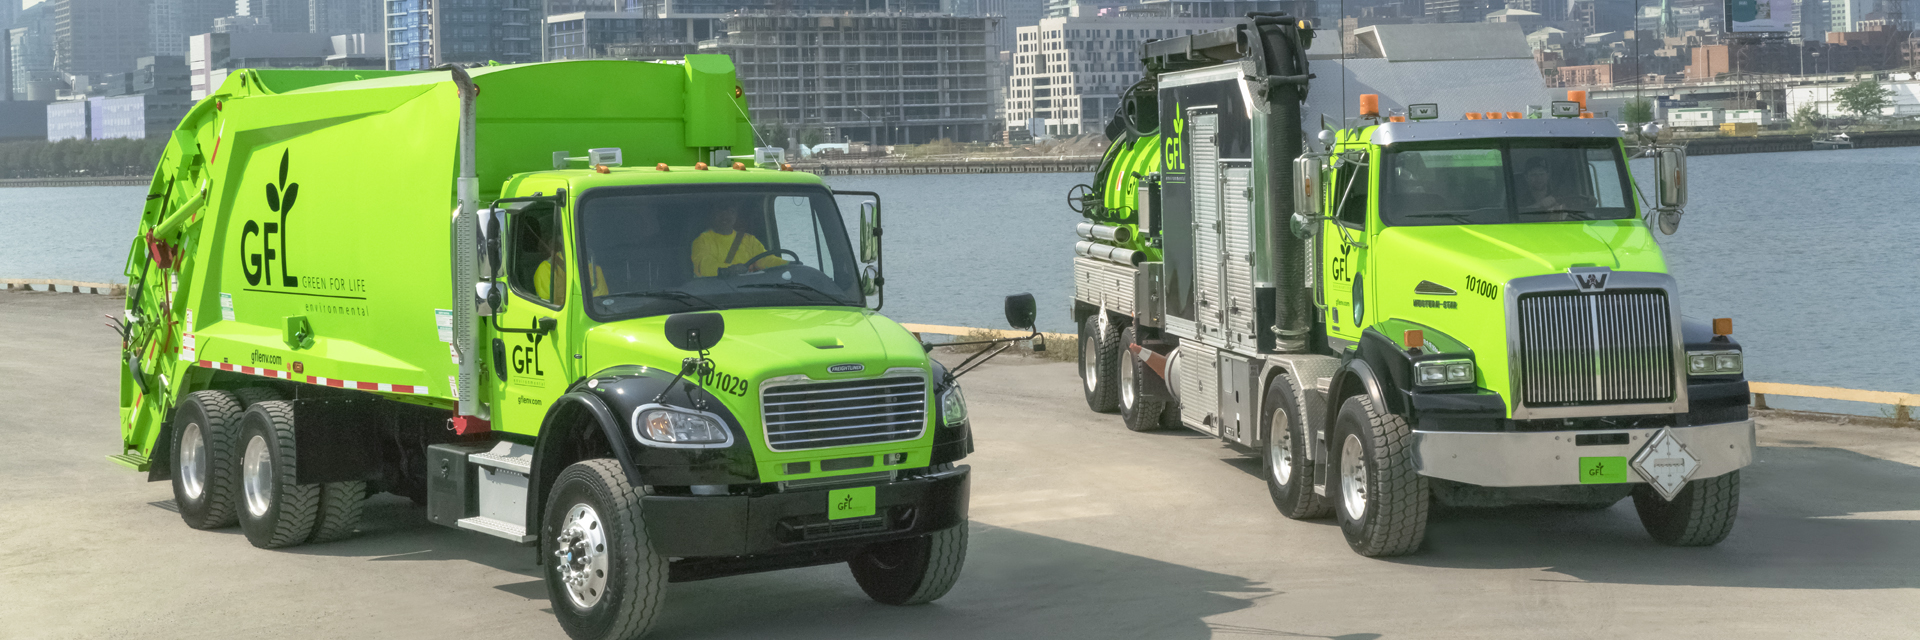 GFL is your full-service partner for environmental solid and liquid waste solutions.